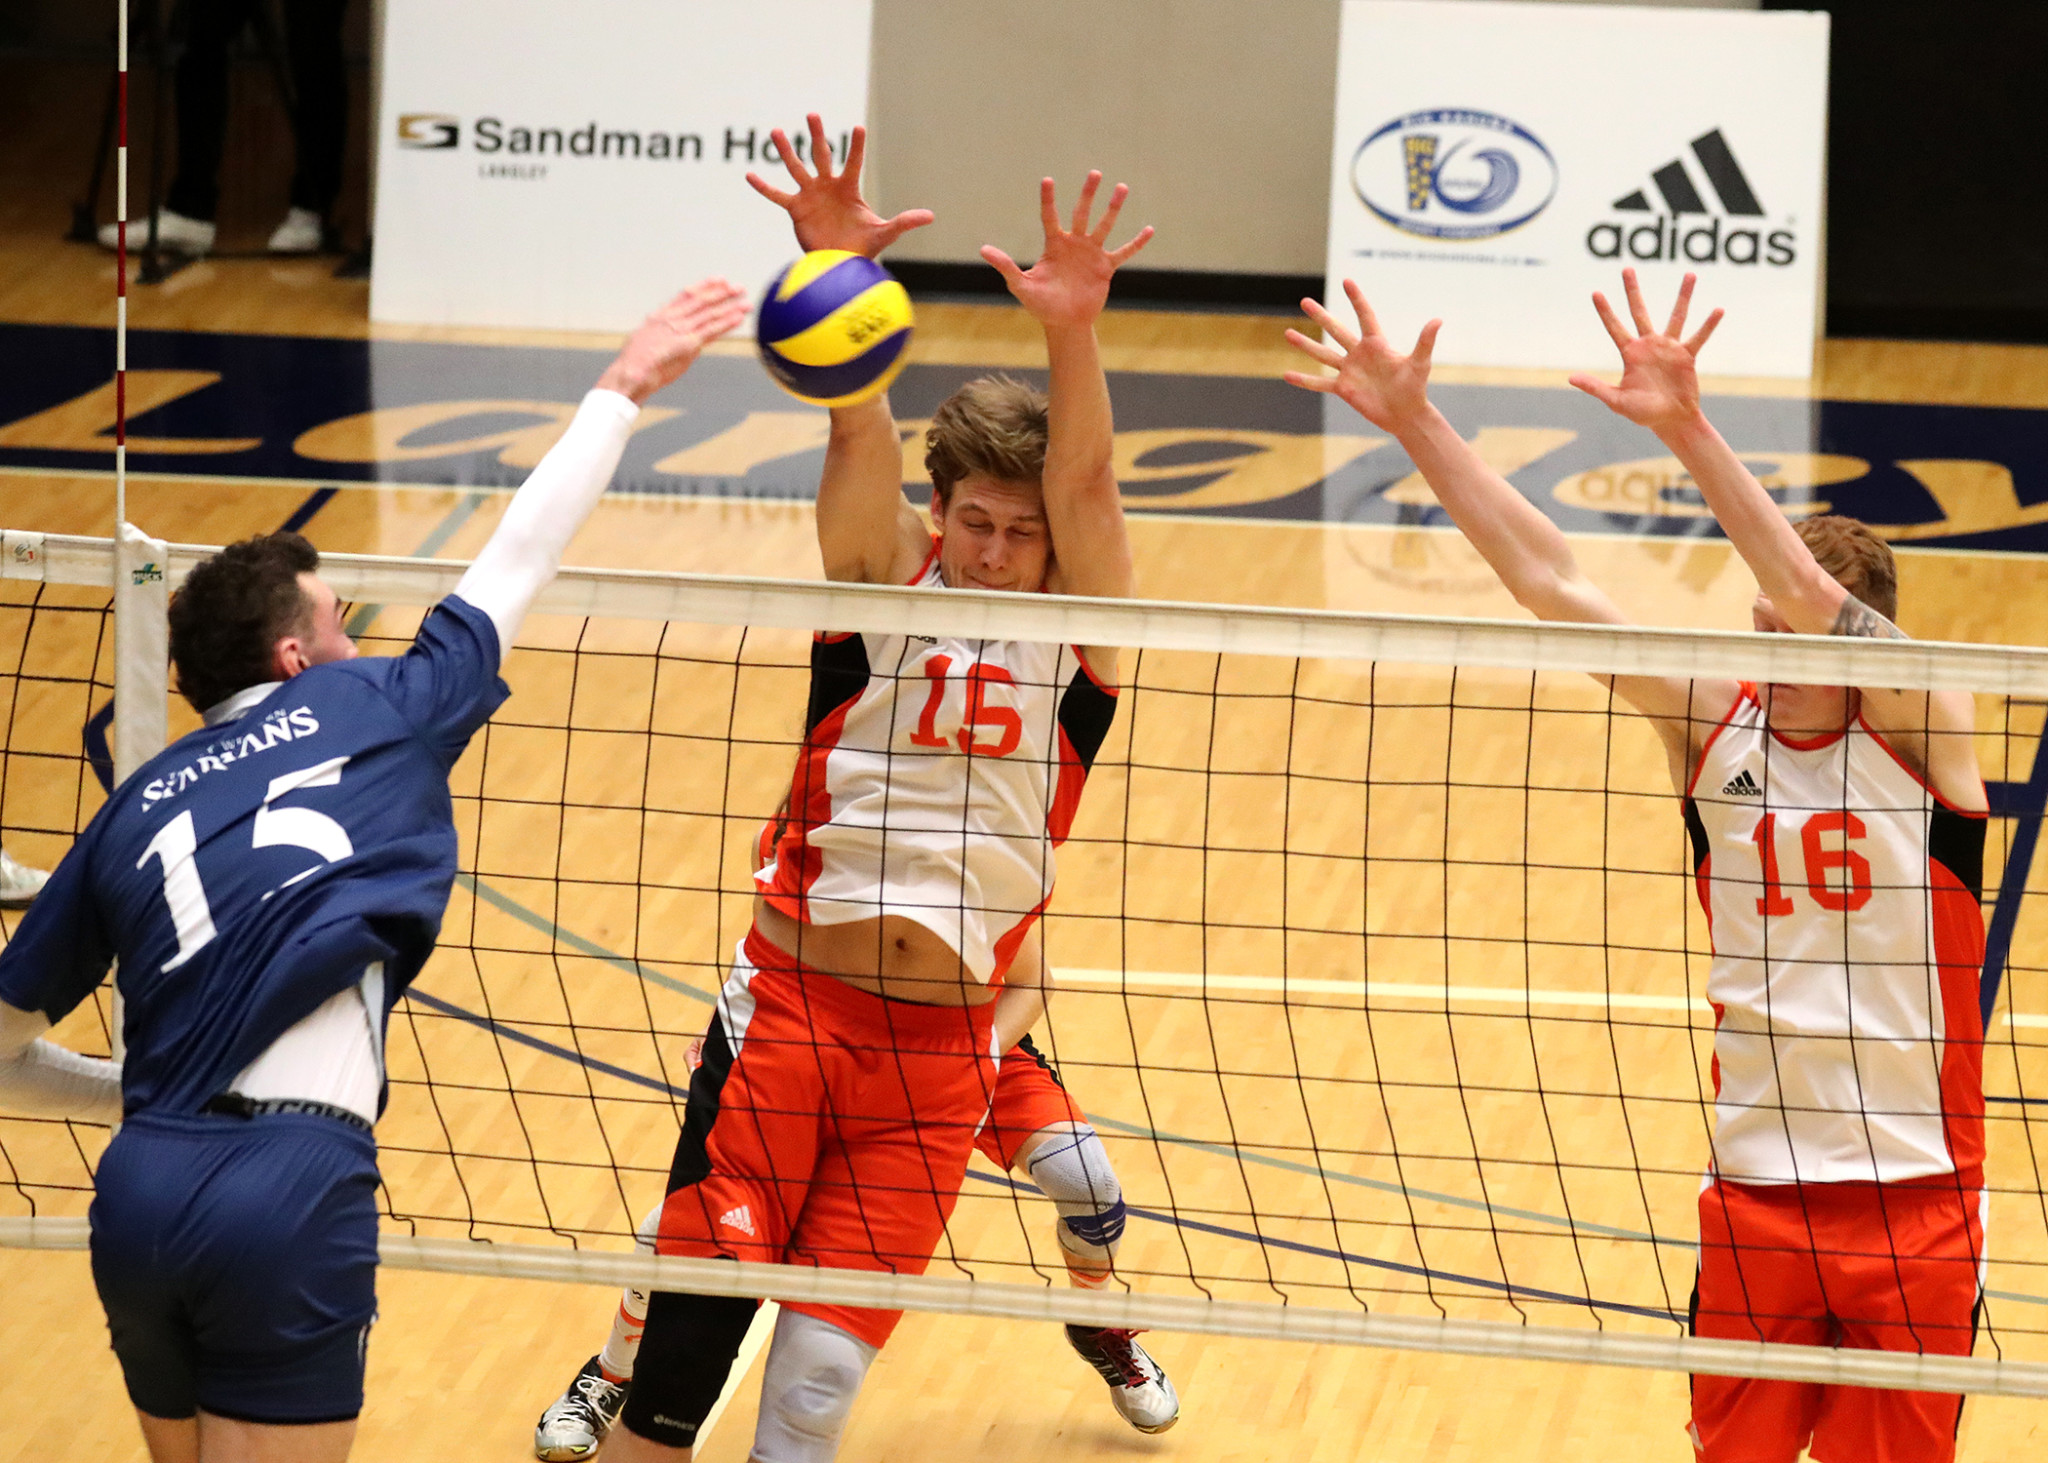 Men's volleyball ends seasons with defeat – The Omega ...